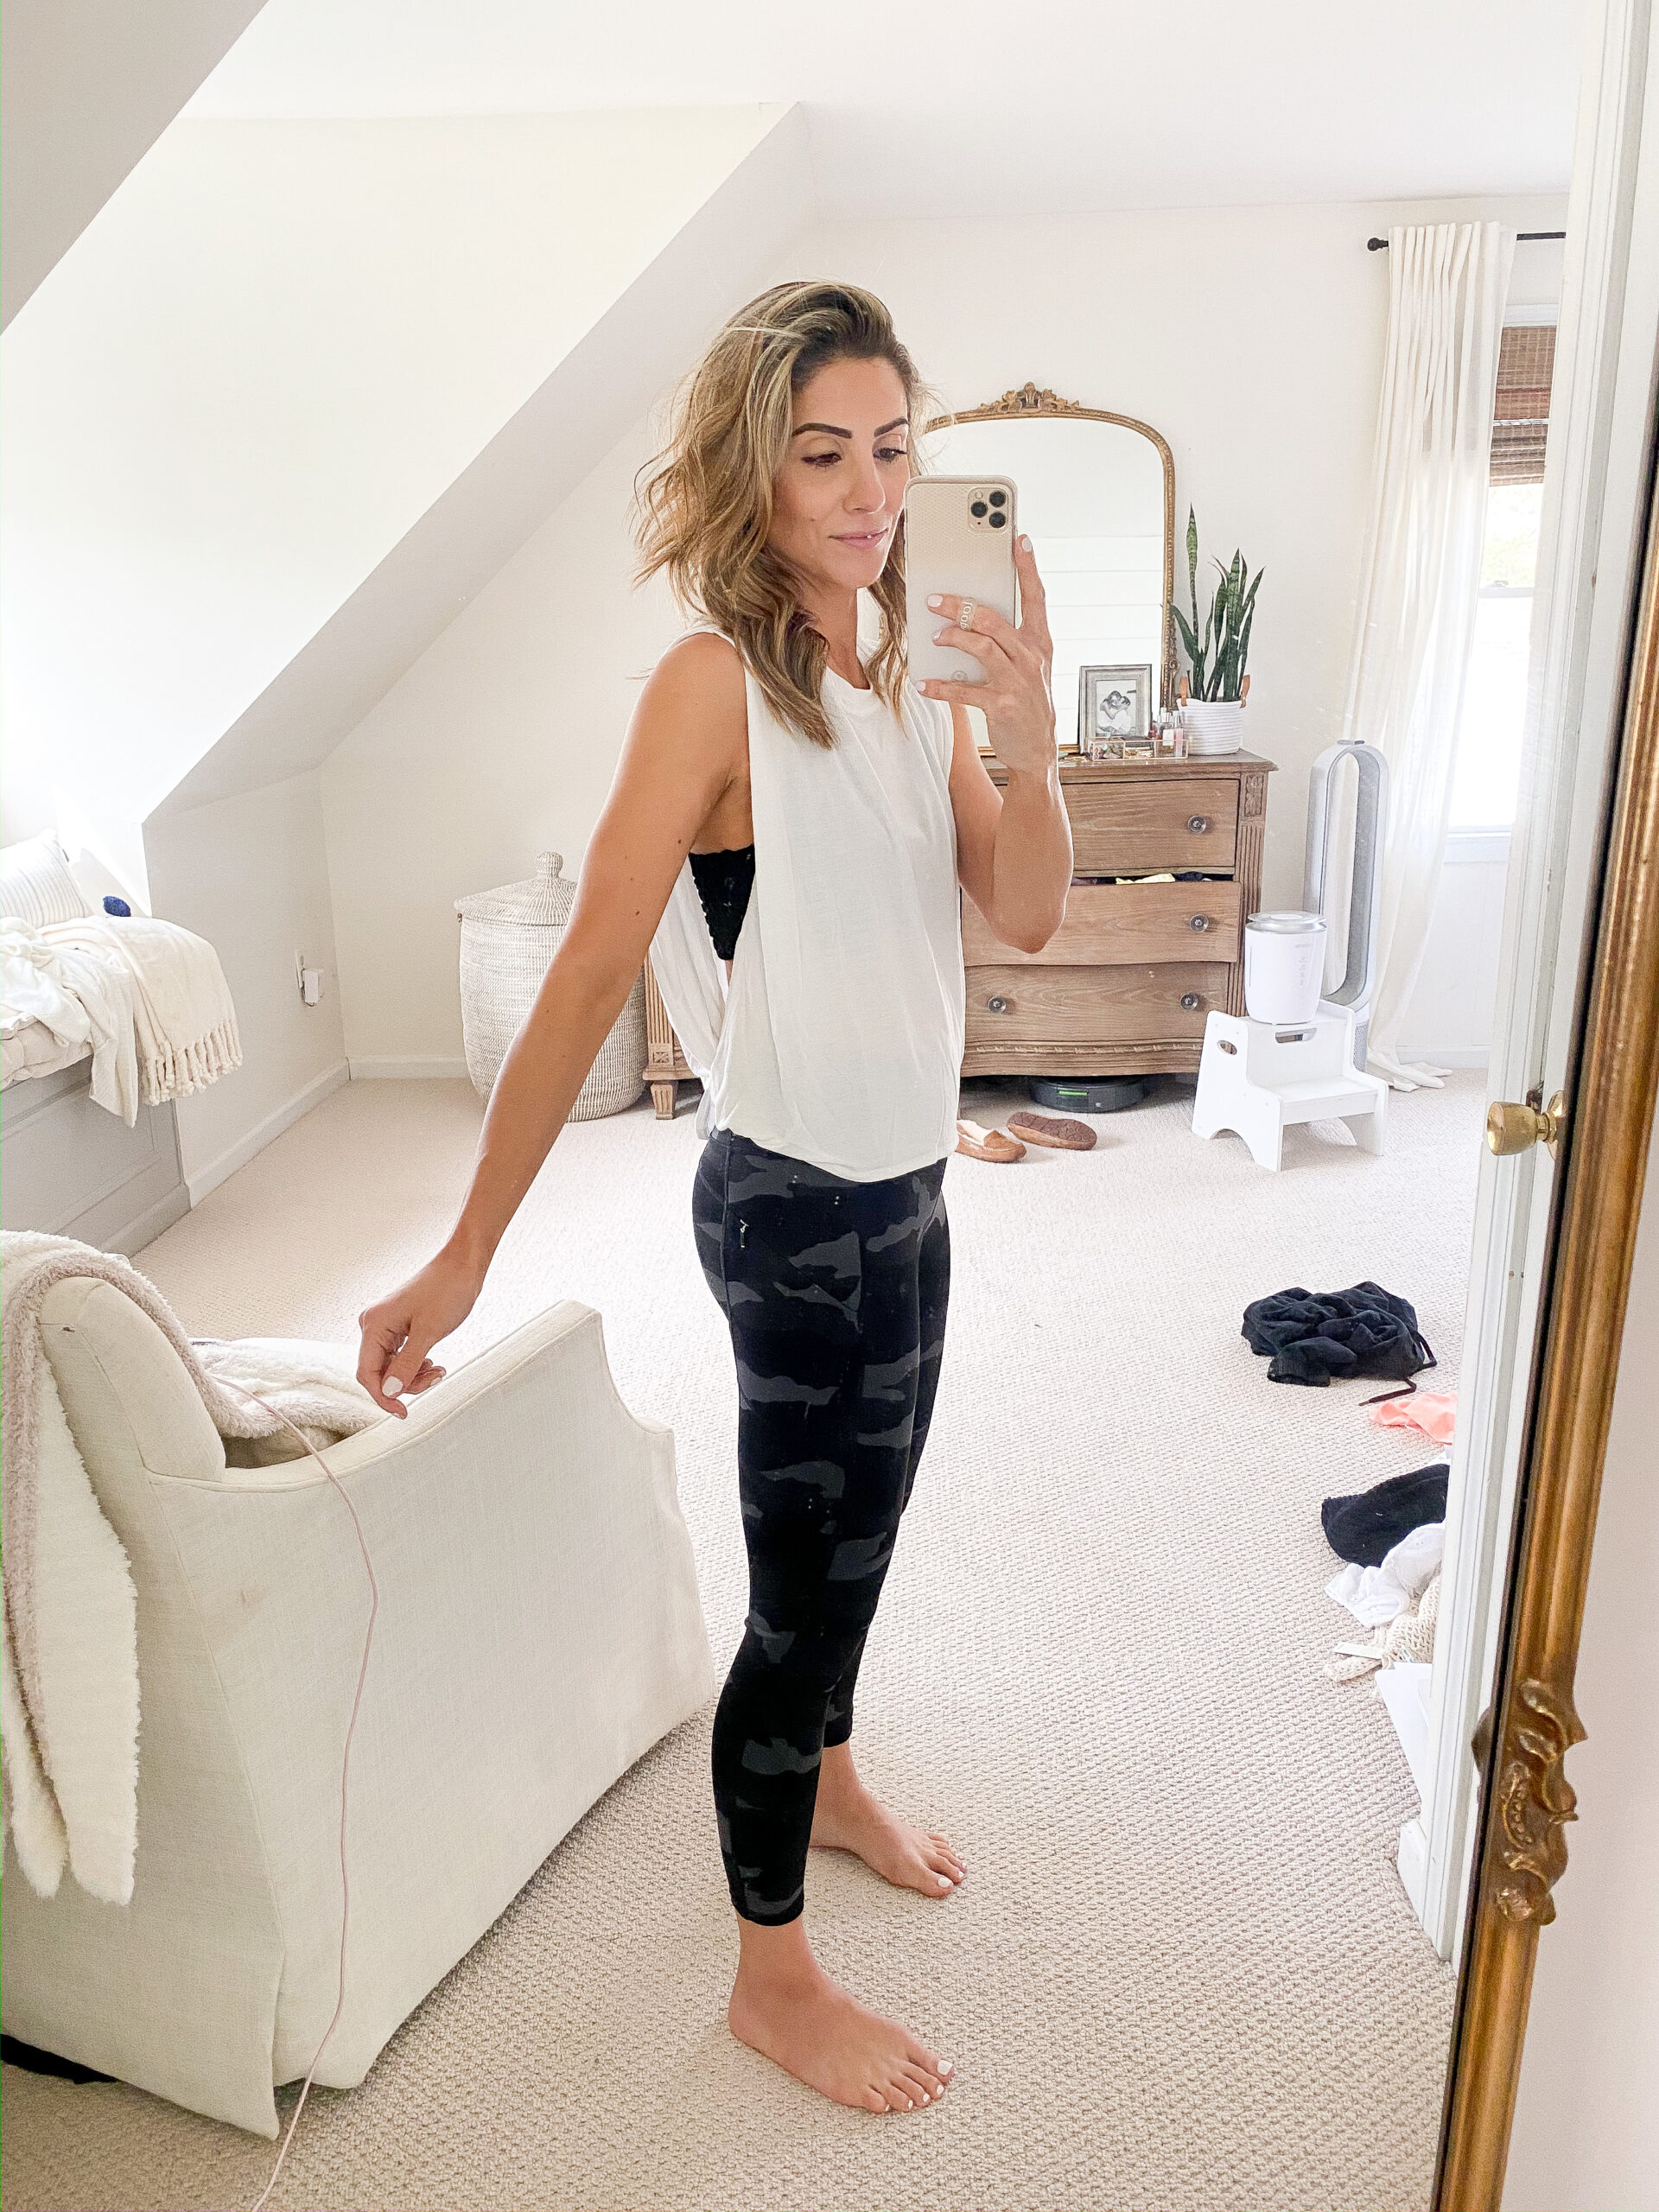 Connecticut life and style blogger Lauren McBride shares a weekend sale roundup featuring loungewear, workout wear, and spring shoes.